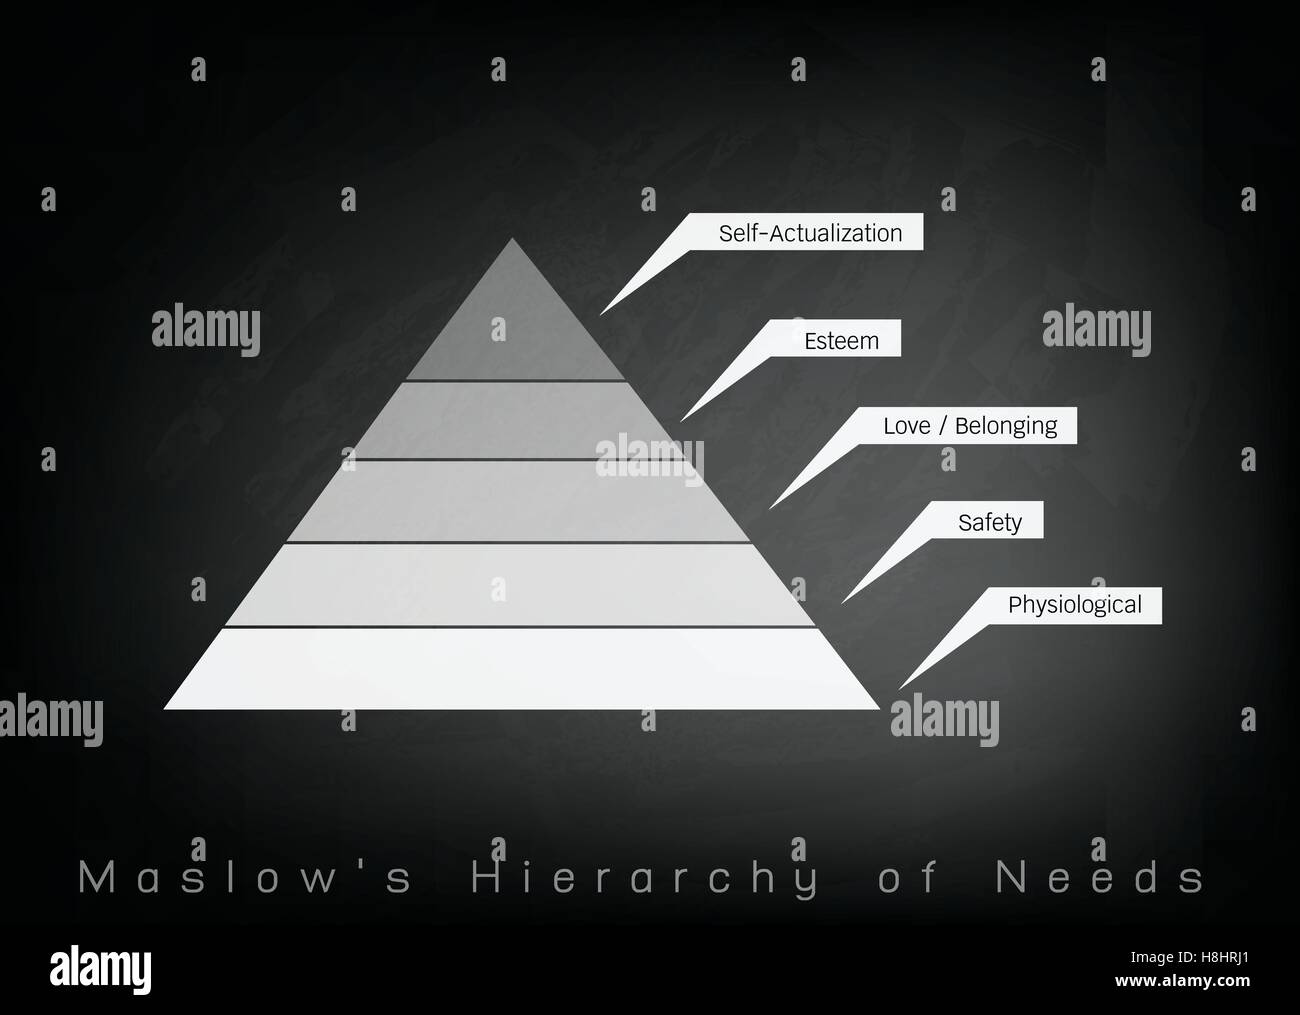 Social and psychological concepts illustration of maslow pyramid social and psychological concepts illustration of maslow pyramid chart with five levels hierarchy of needs in human motivation ccuart Image collections